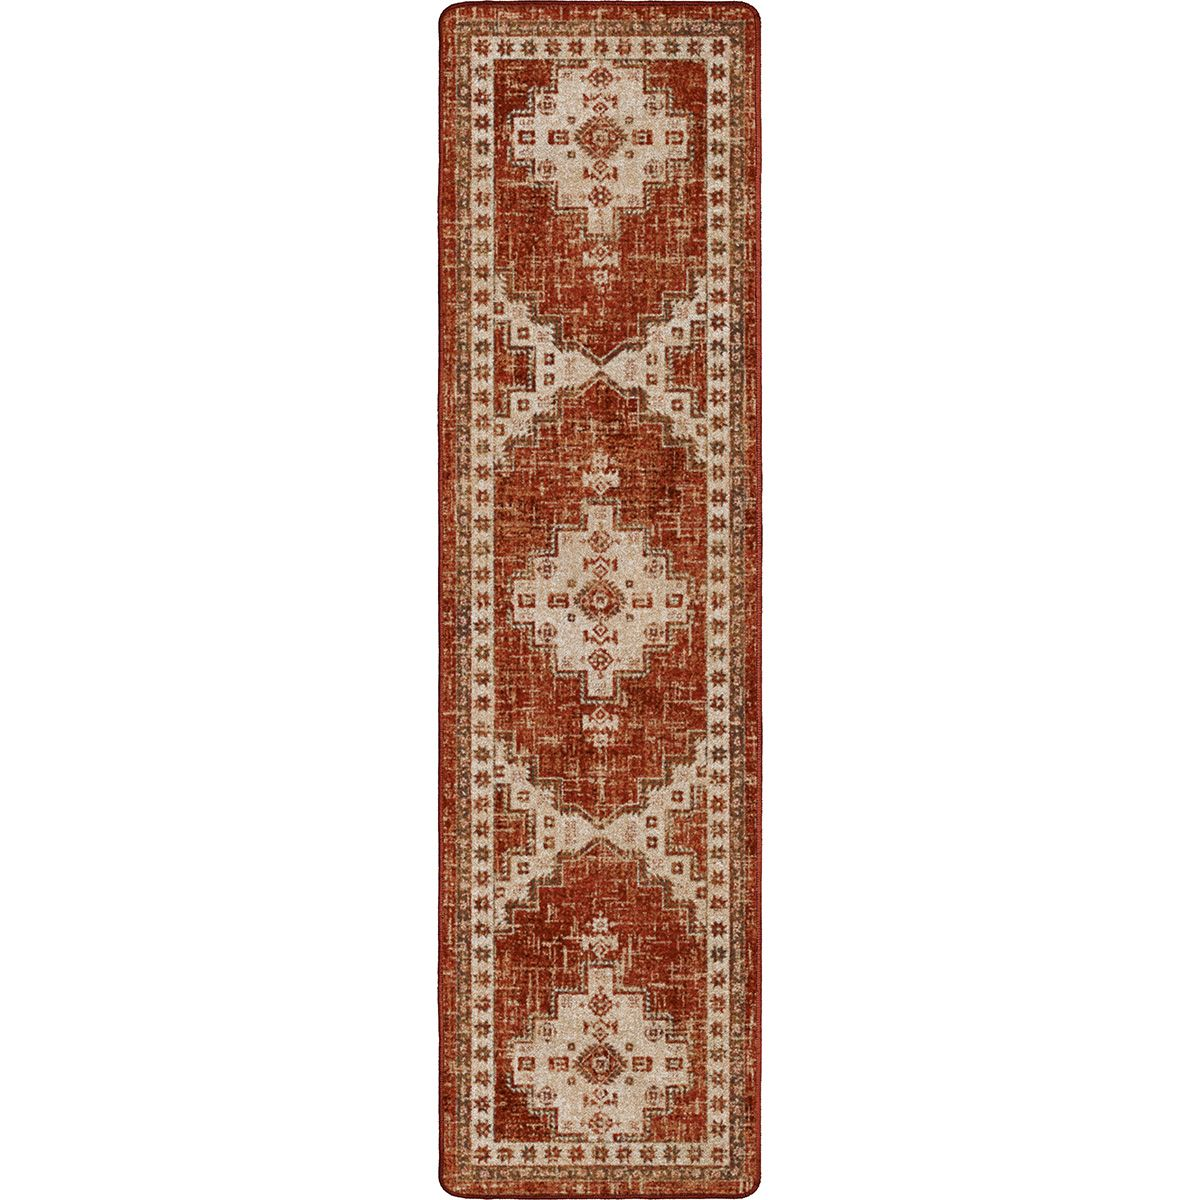 Sedona Nights Red Rock Rug - 2 x 8